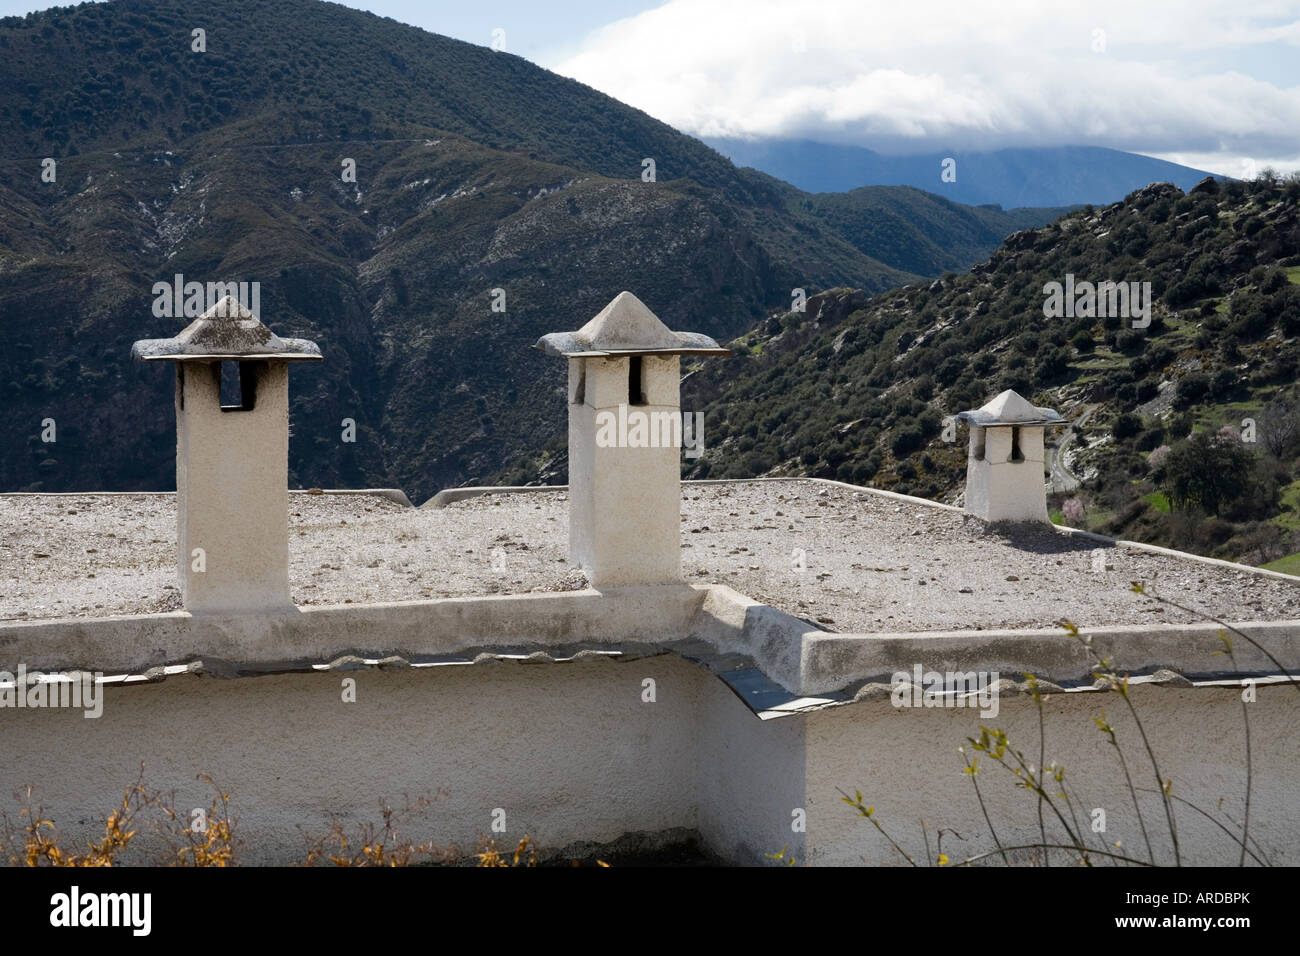 Andalucian chimney pots - Stock Image